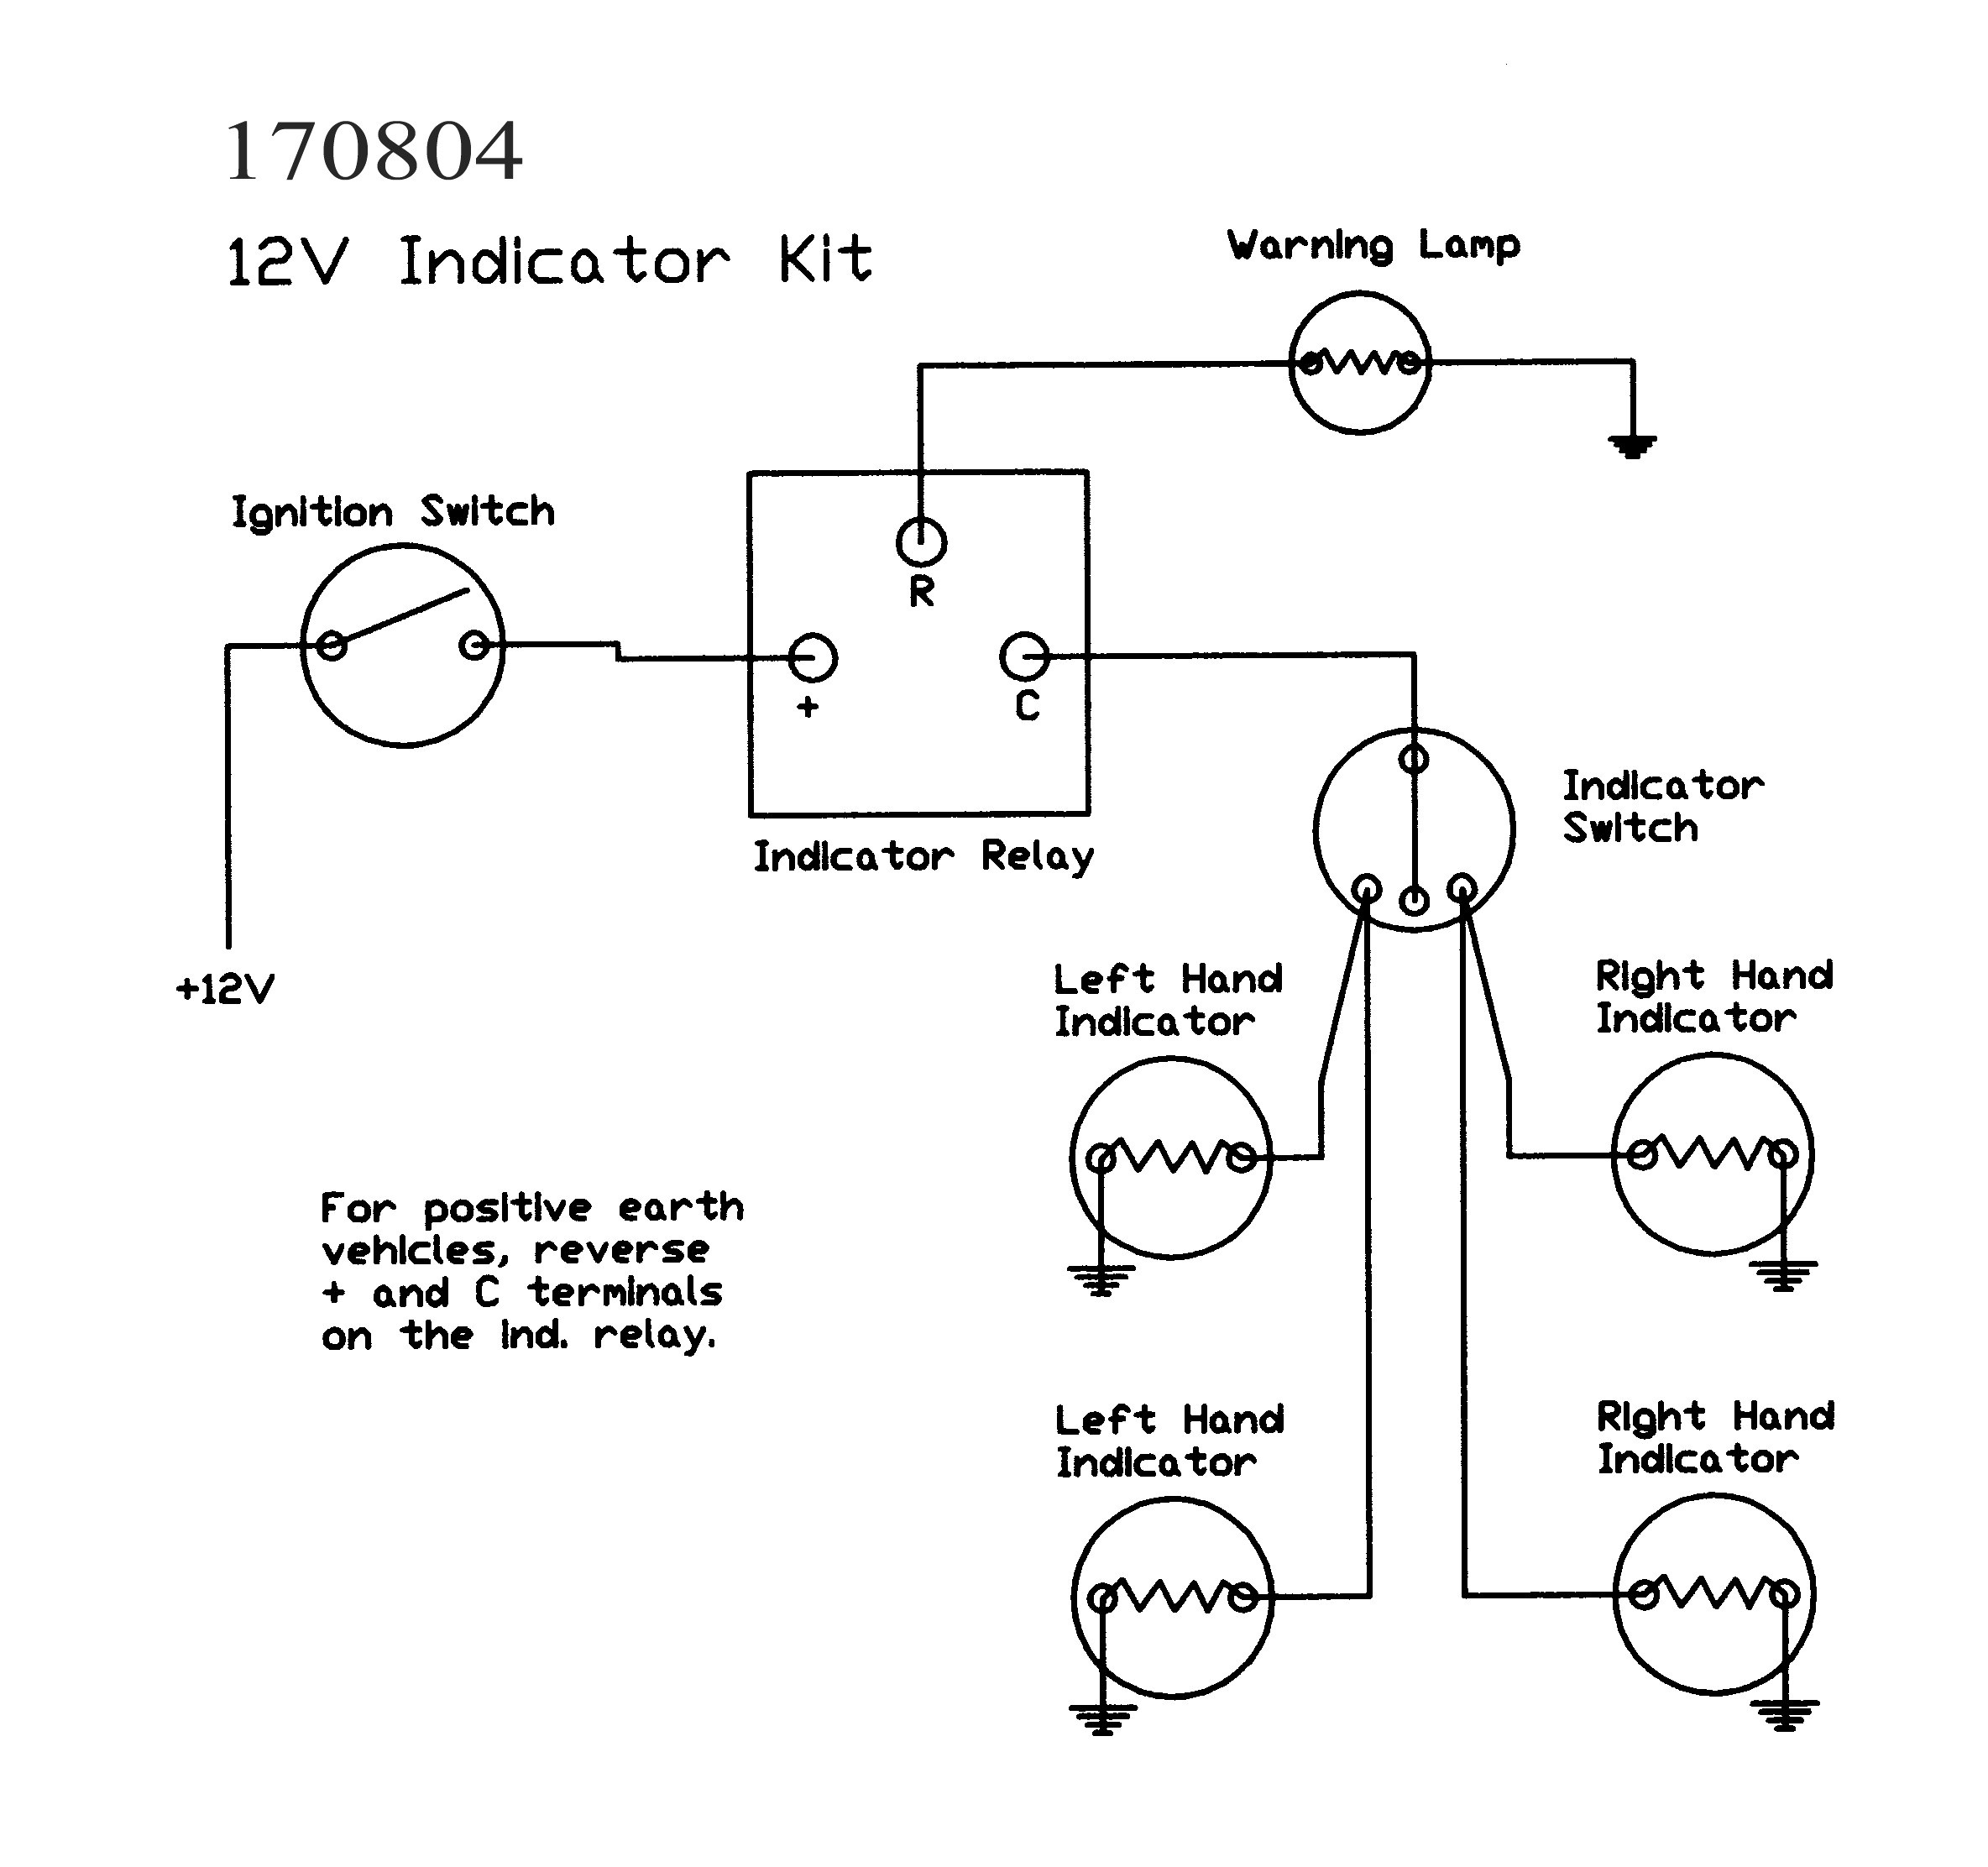 Signal Light Flasher Wiring Diagram Flasher Circuit Using Ic the Road Less Box Blog astable Wiring Of Signal Light Flasher Wiring Diagram